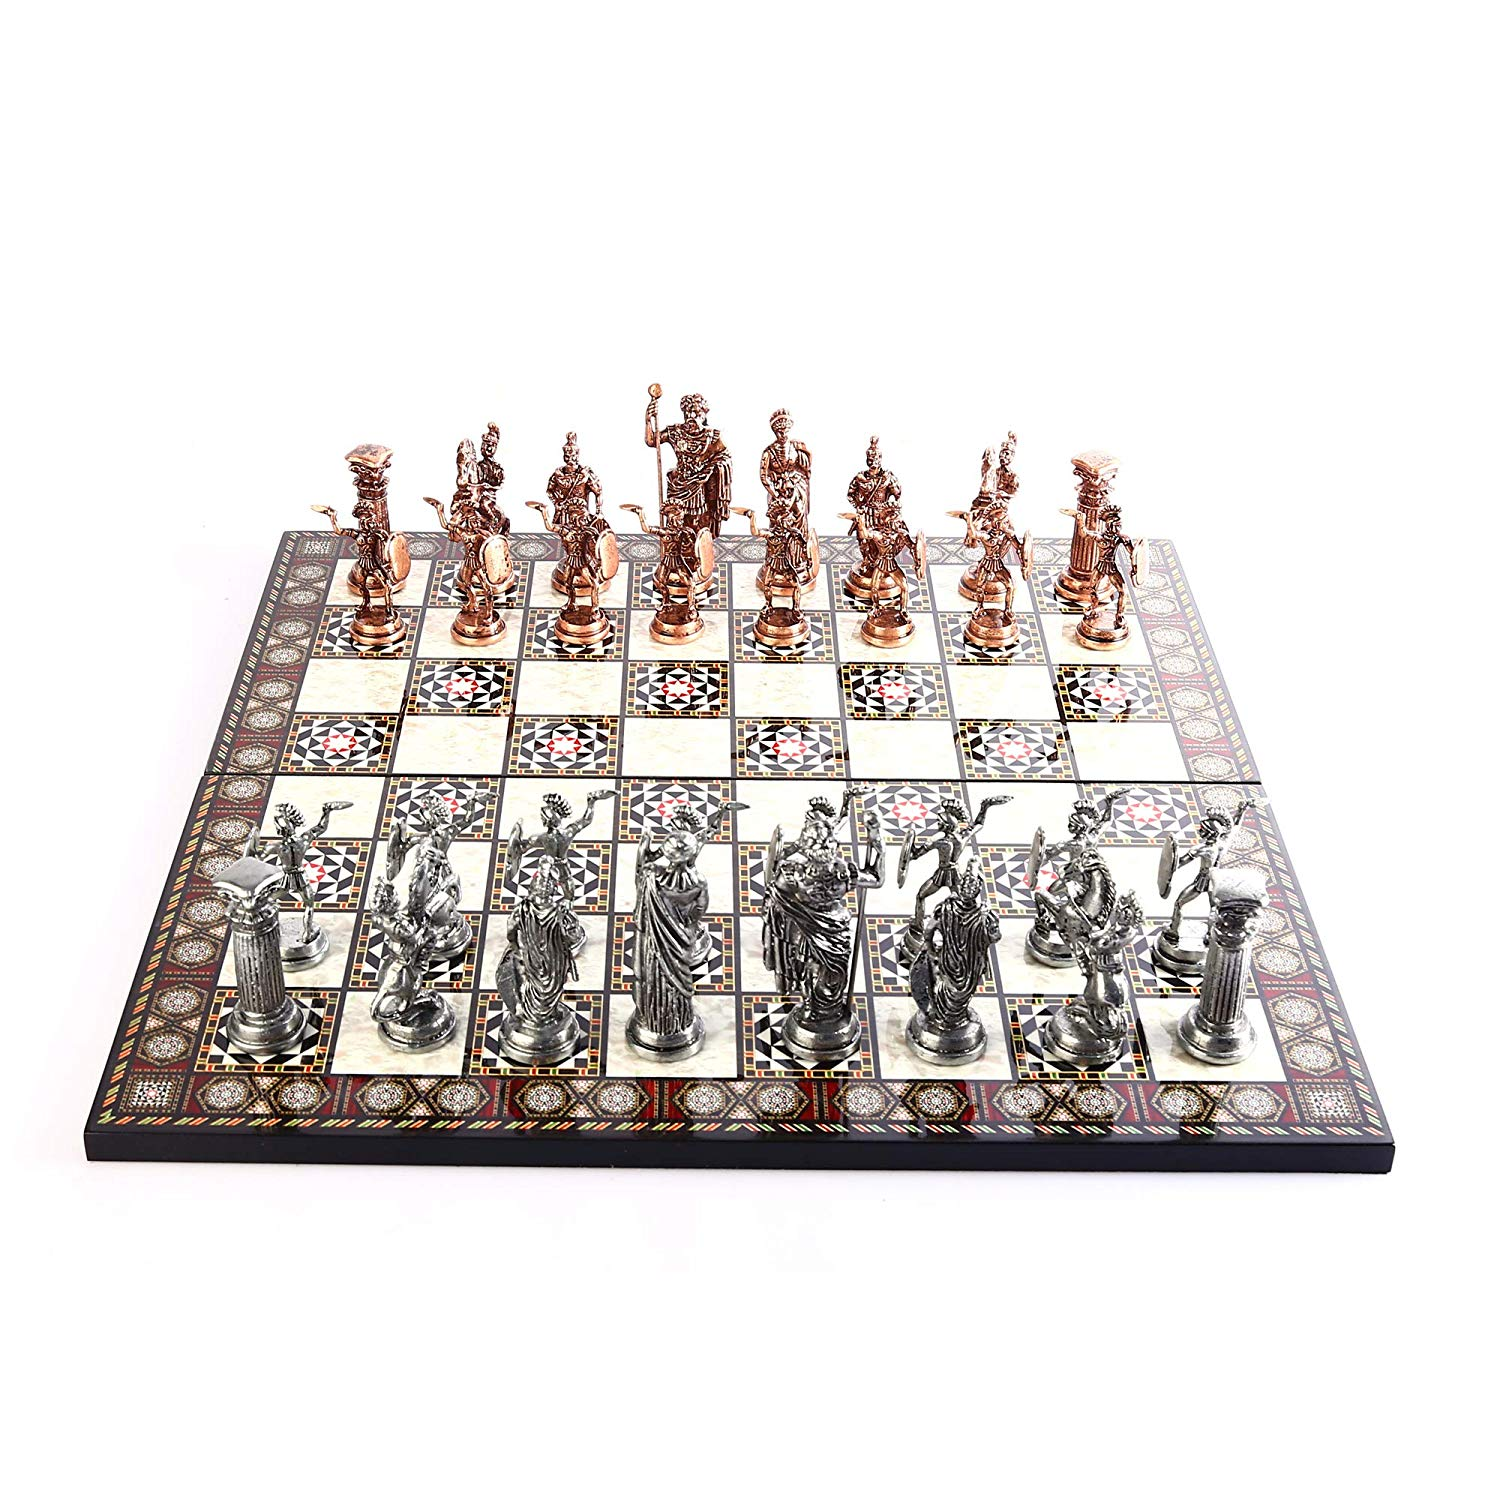 Historical Antique Copper Rome Figures Metal Chess Set,Handmade Pieces,Mother-of-Pearl Design Wood Chess Board King 11 Cm